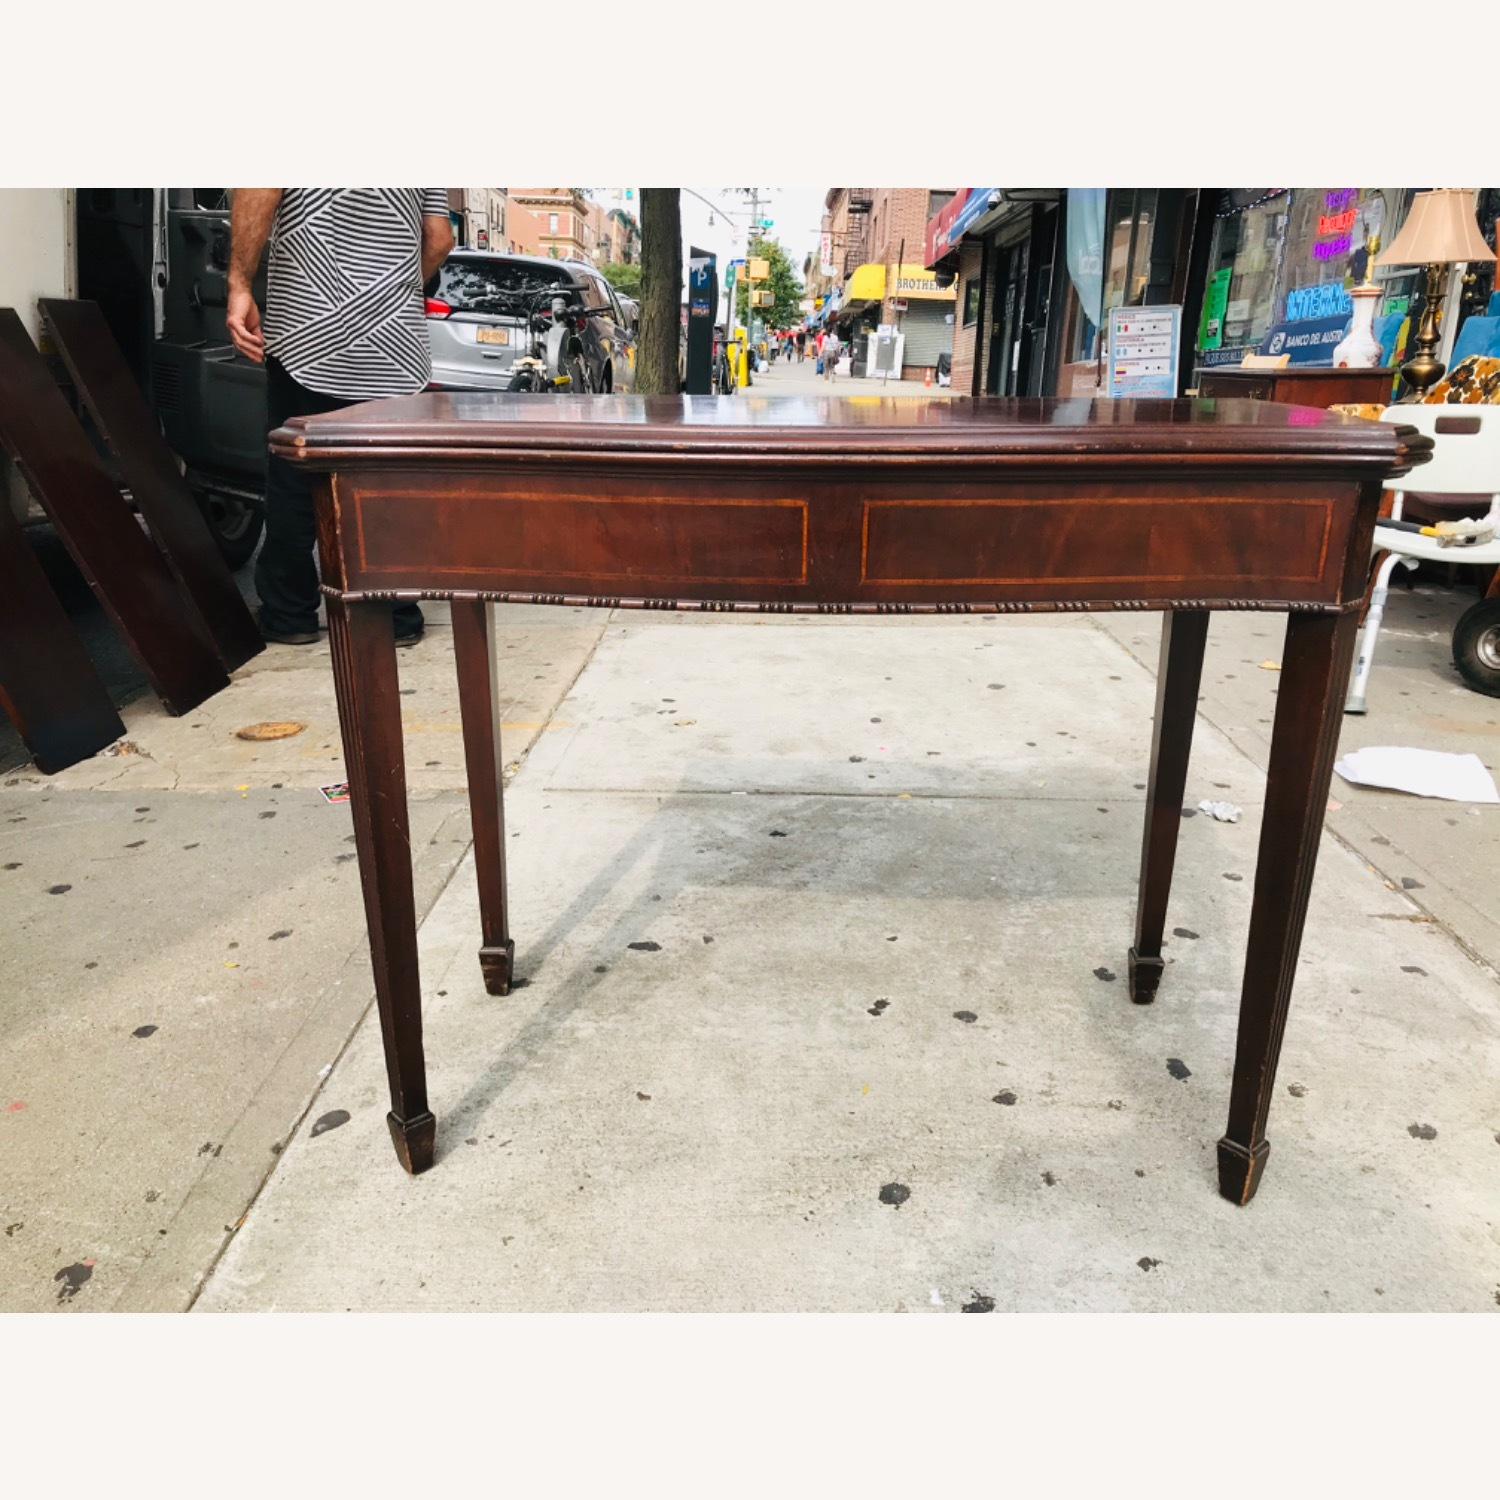 Antique 1920s Mahogany Table w/3 Leaves  - image-5